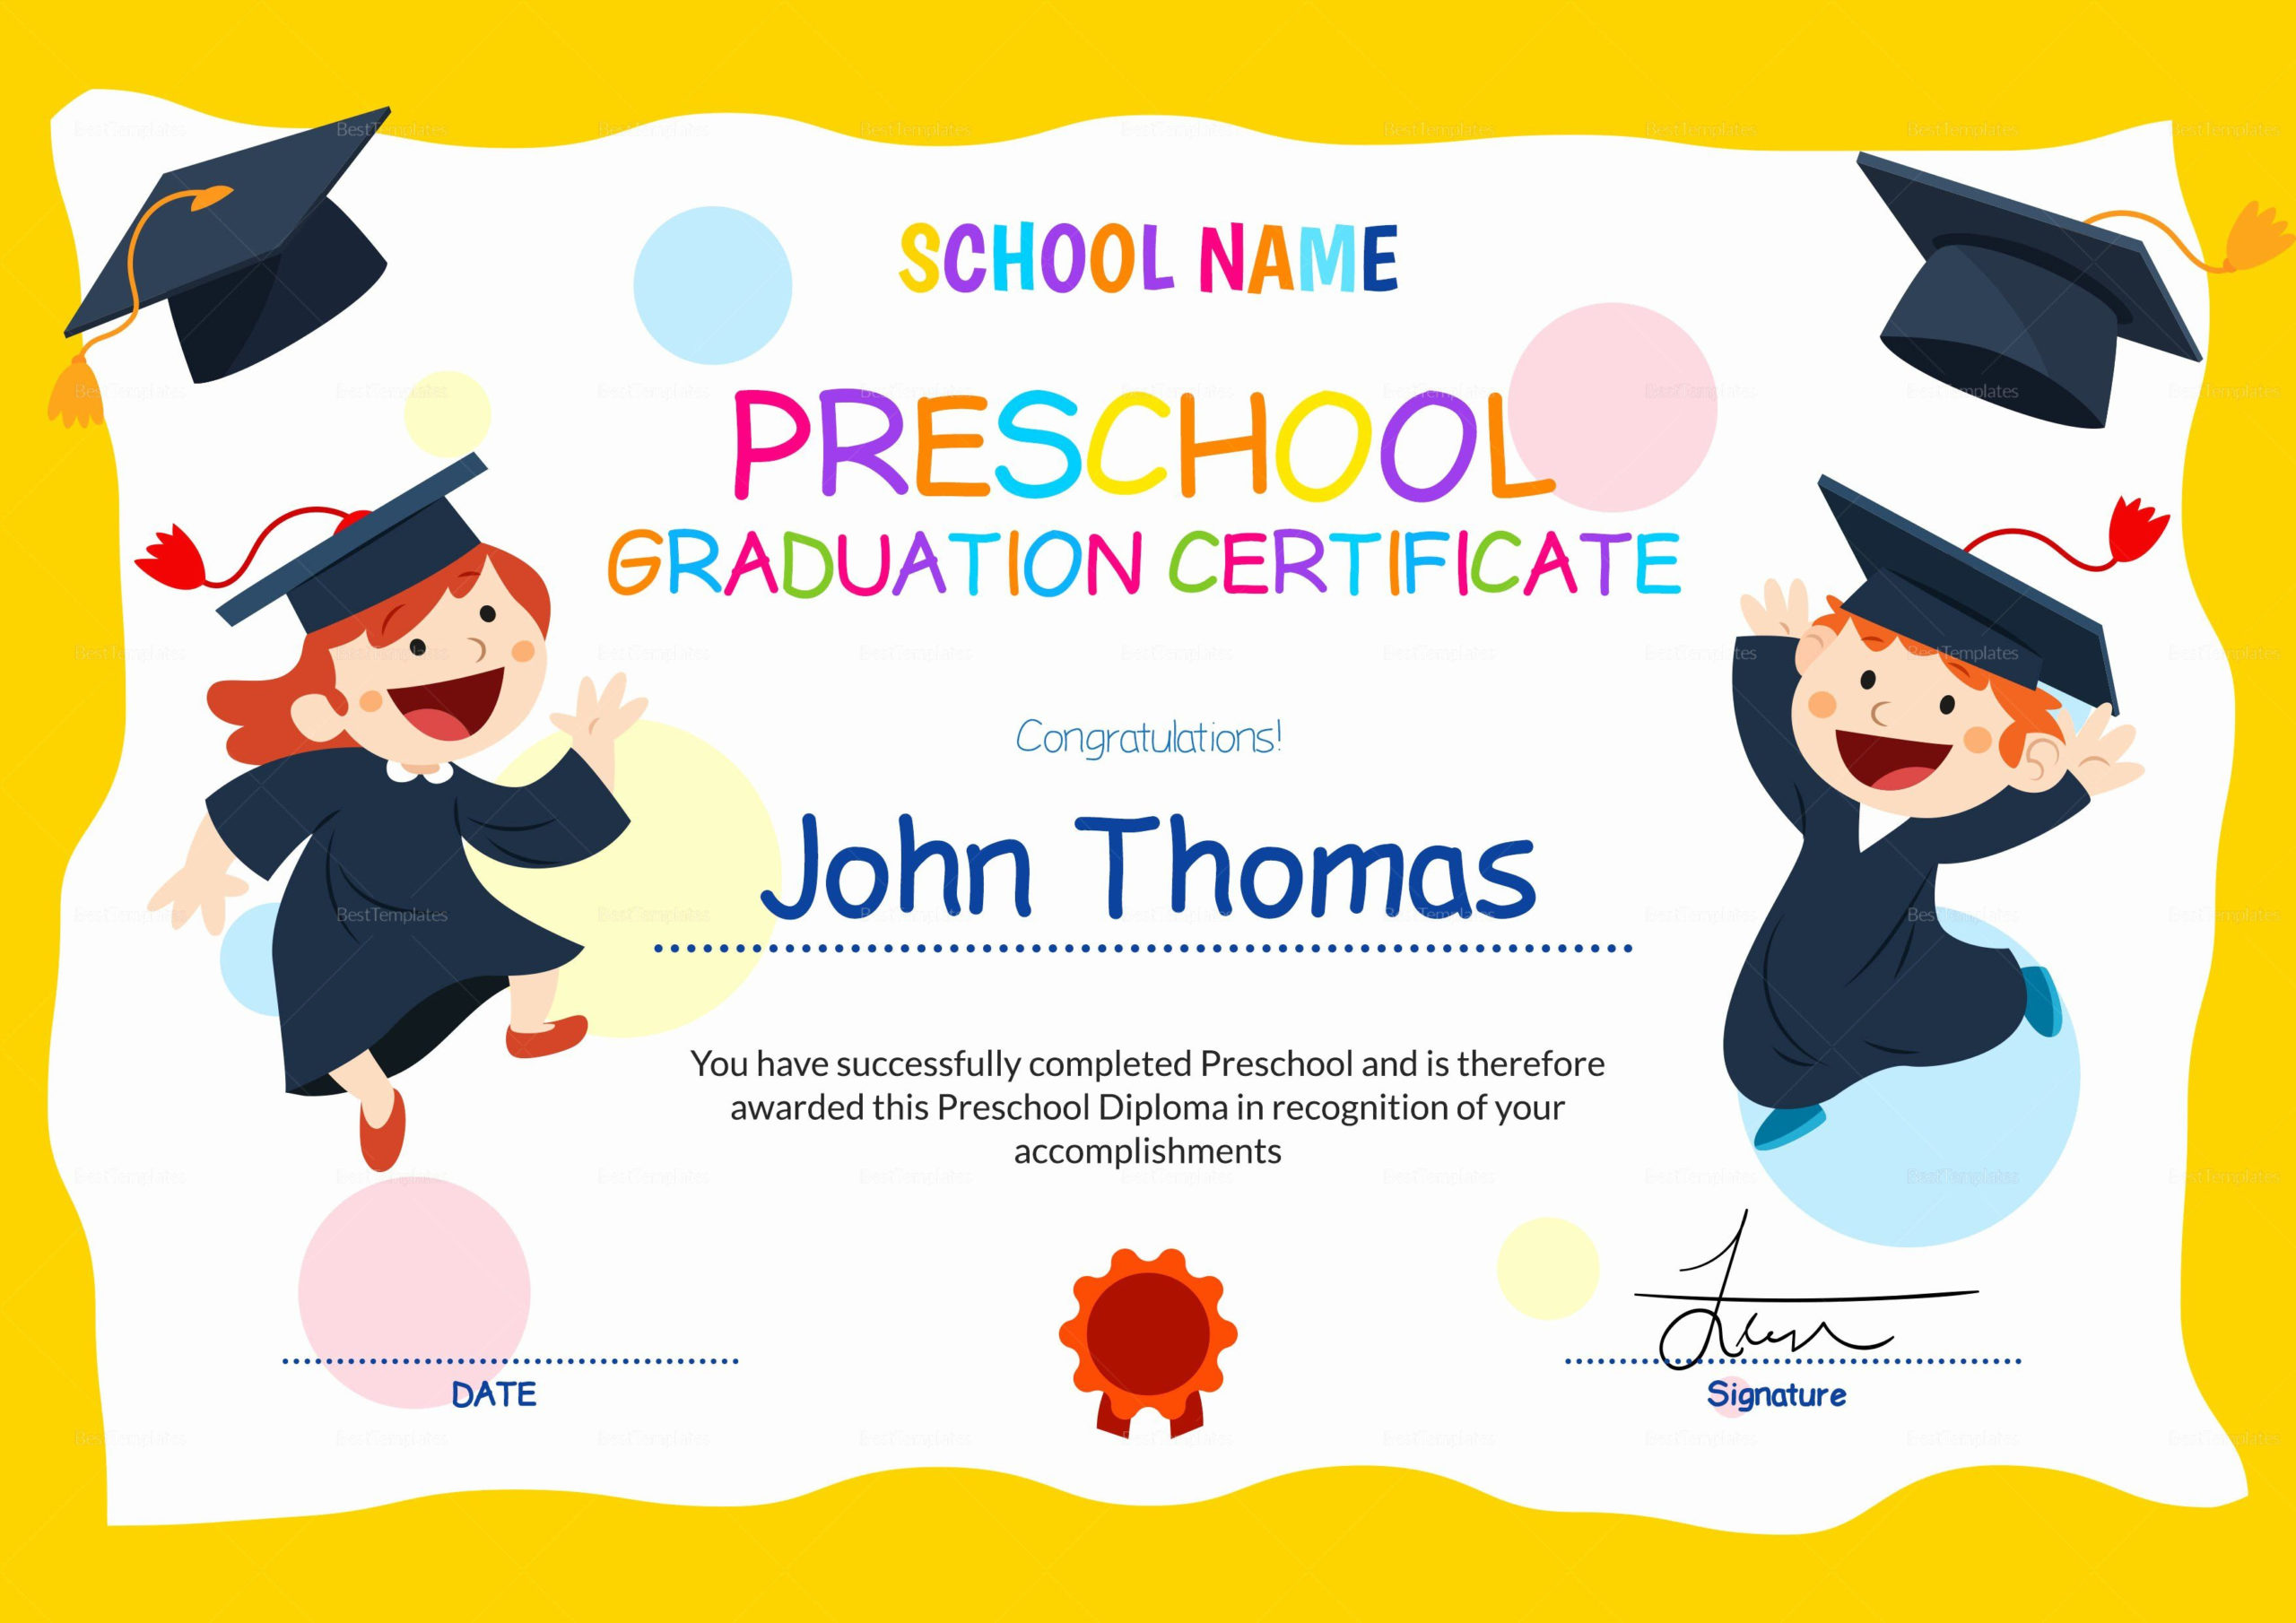 Free Printable Graduation Certificate Templates In 2020 intended for Kindergarten Diploma Certificate Templates 10 Designs Free